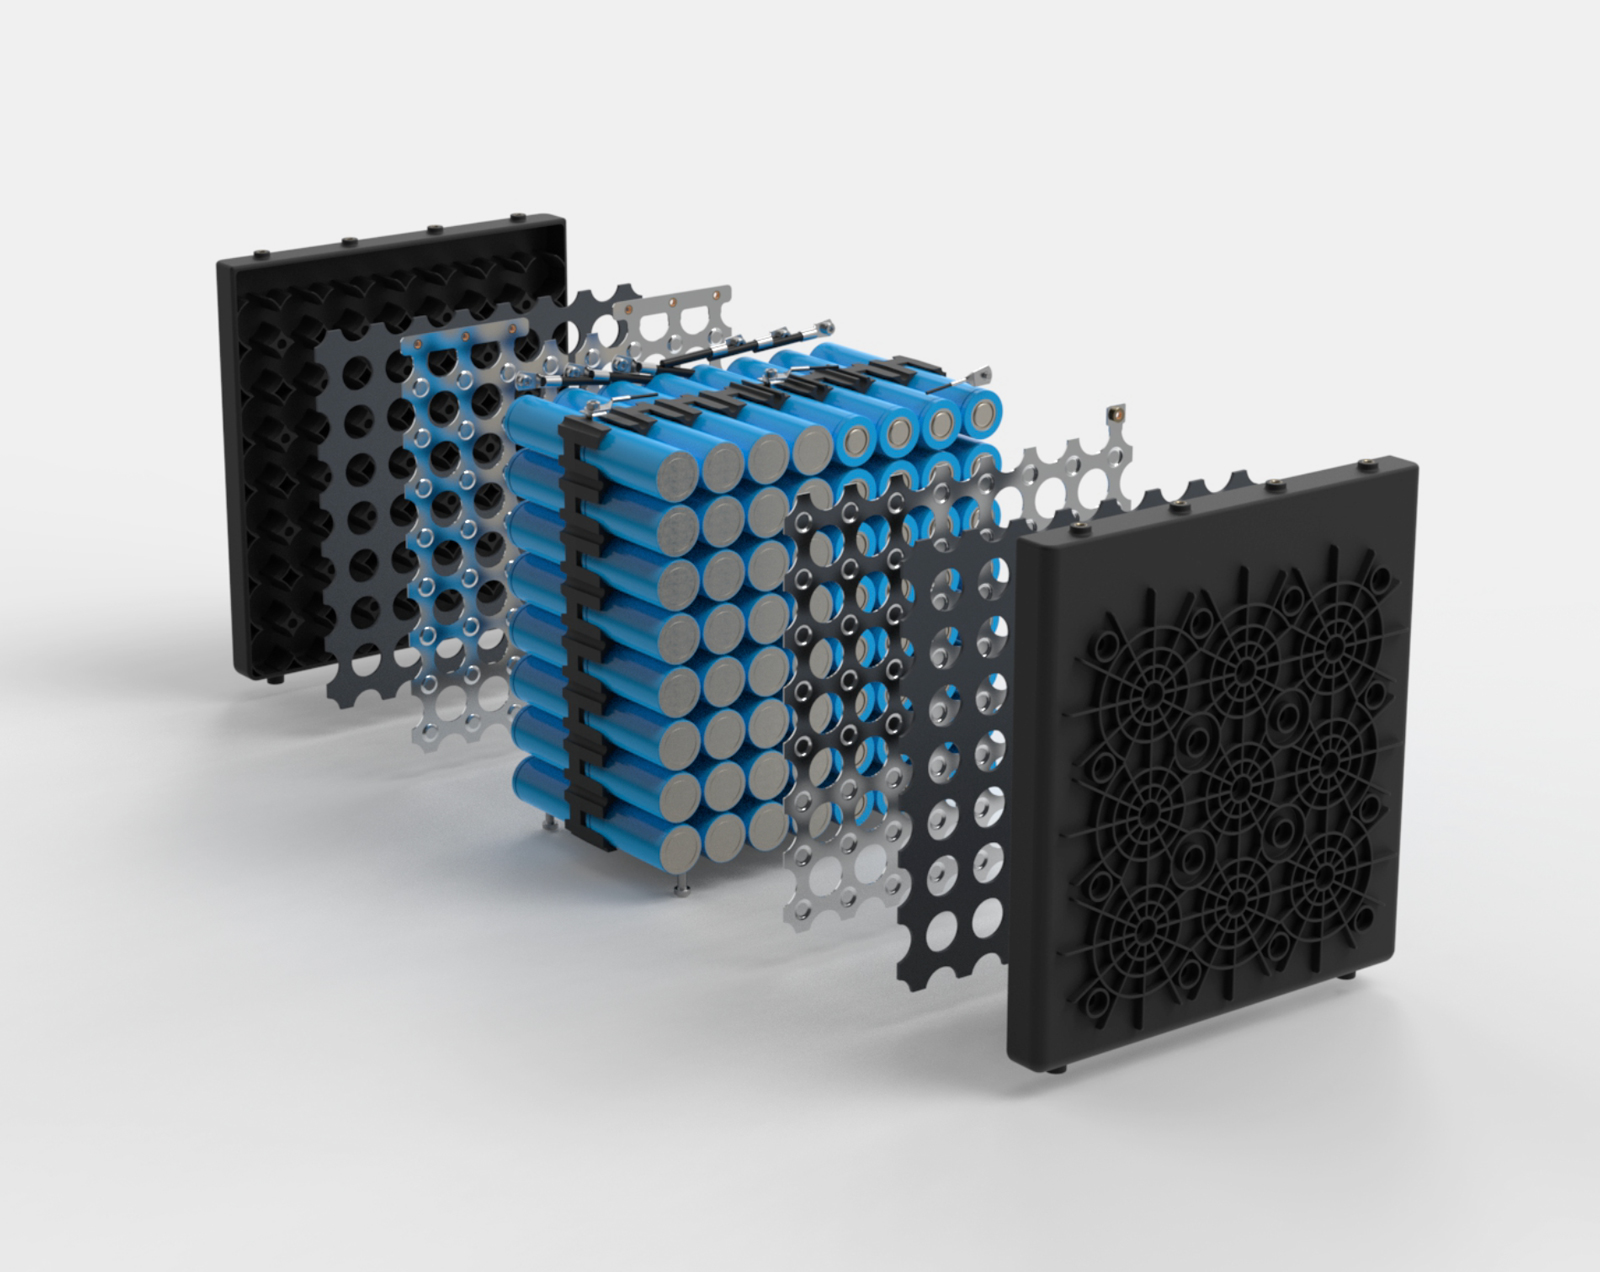 explode animation of the Essential battery core: easy to assemble and service